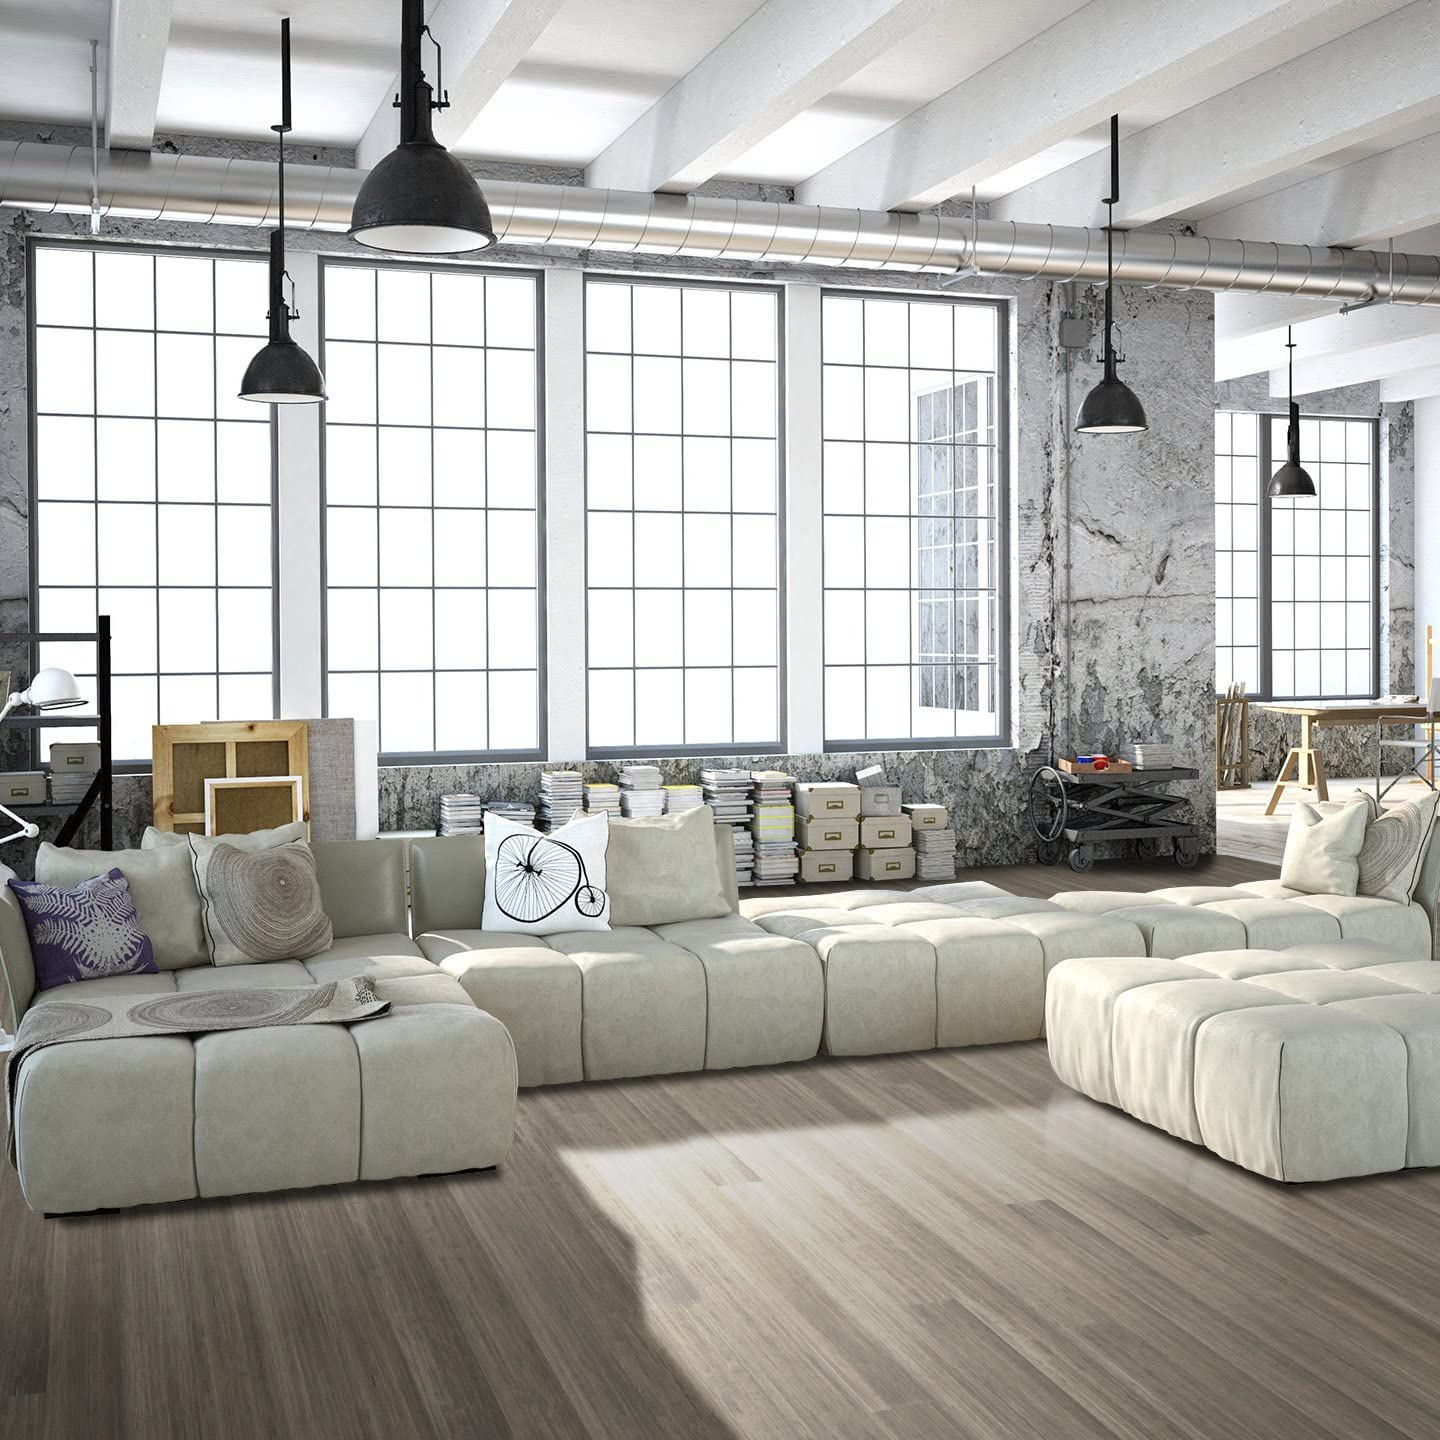 Cali Bamboo Catalina Gray Sample Size 8 L x 5 3//8 W x 9//16 H Solid Wide T/&G Bamboo Flooring Heavy Distressed